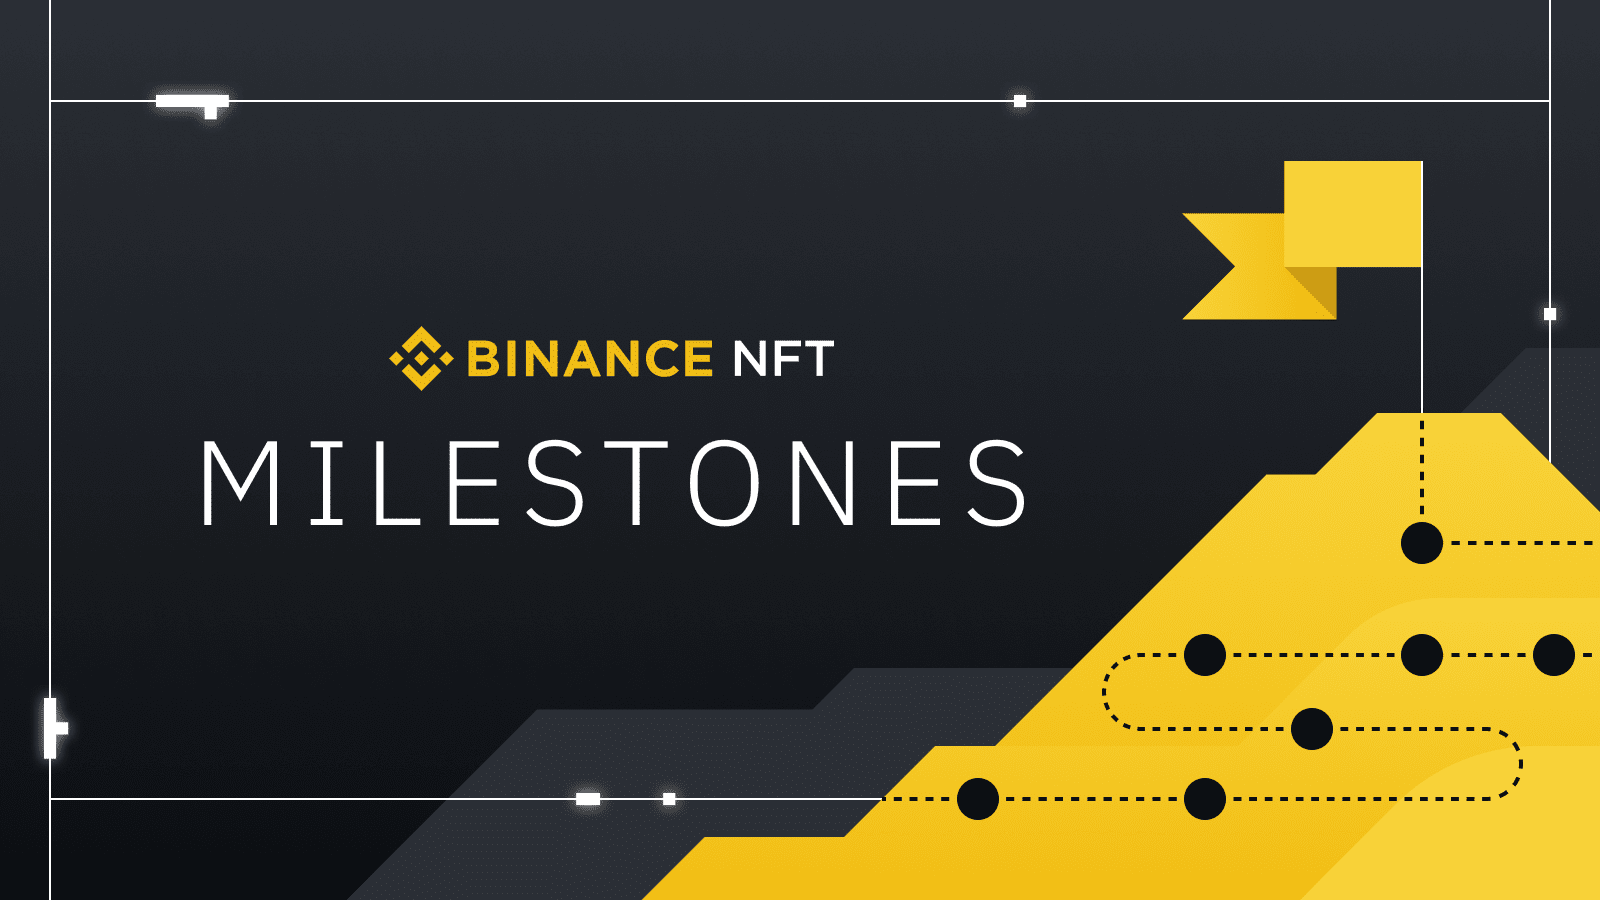 Binance NFT Milestones: The New NFT Gaming 'Launchpad' With Over 300,000 Mystery Boxes SoldCryptocurrency Trading Signals, Strategies & Templates | DexStrats